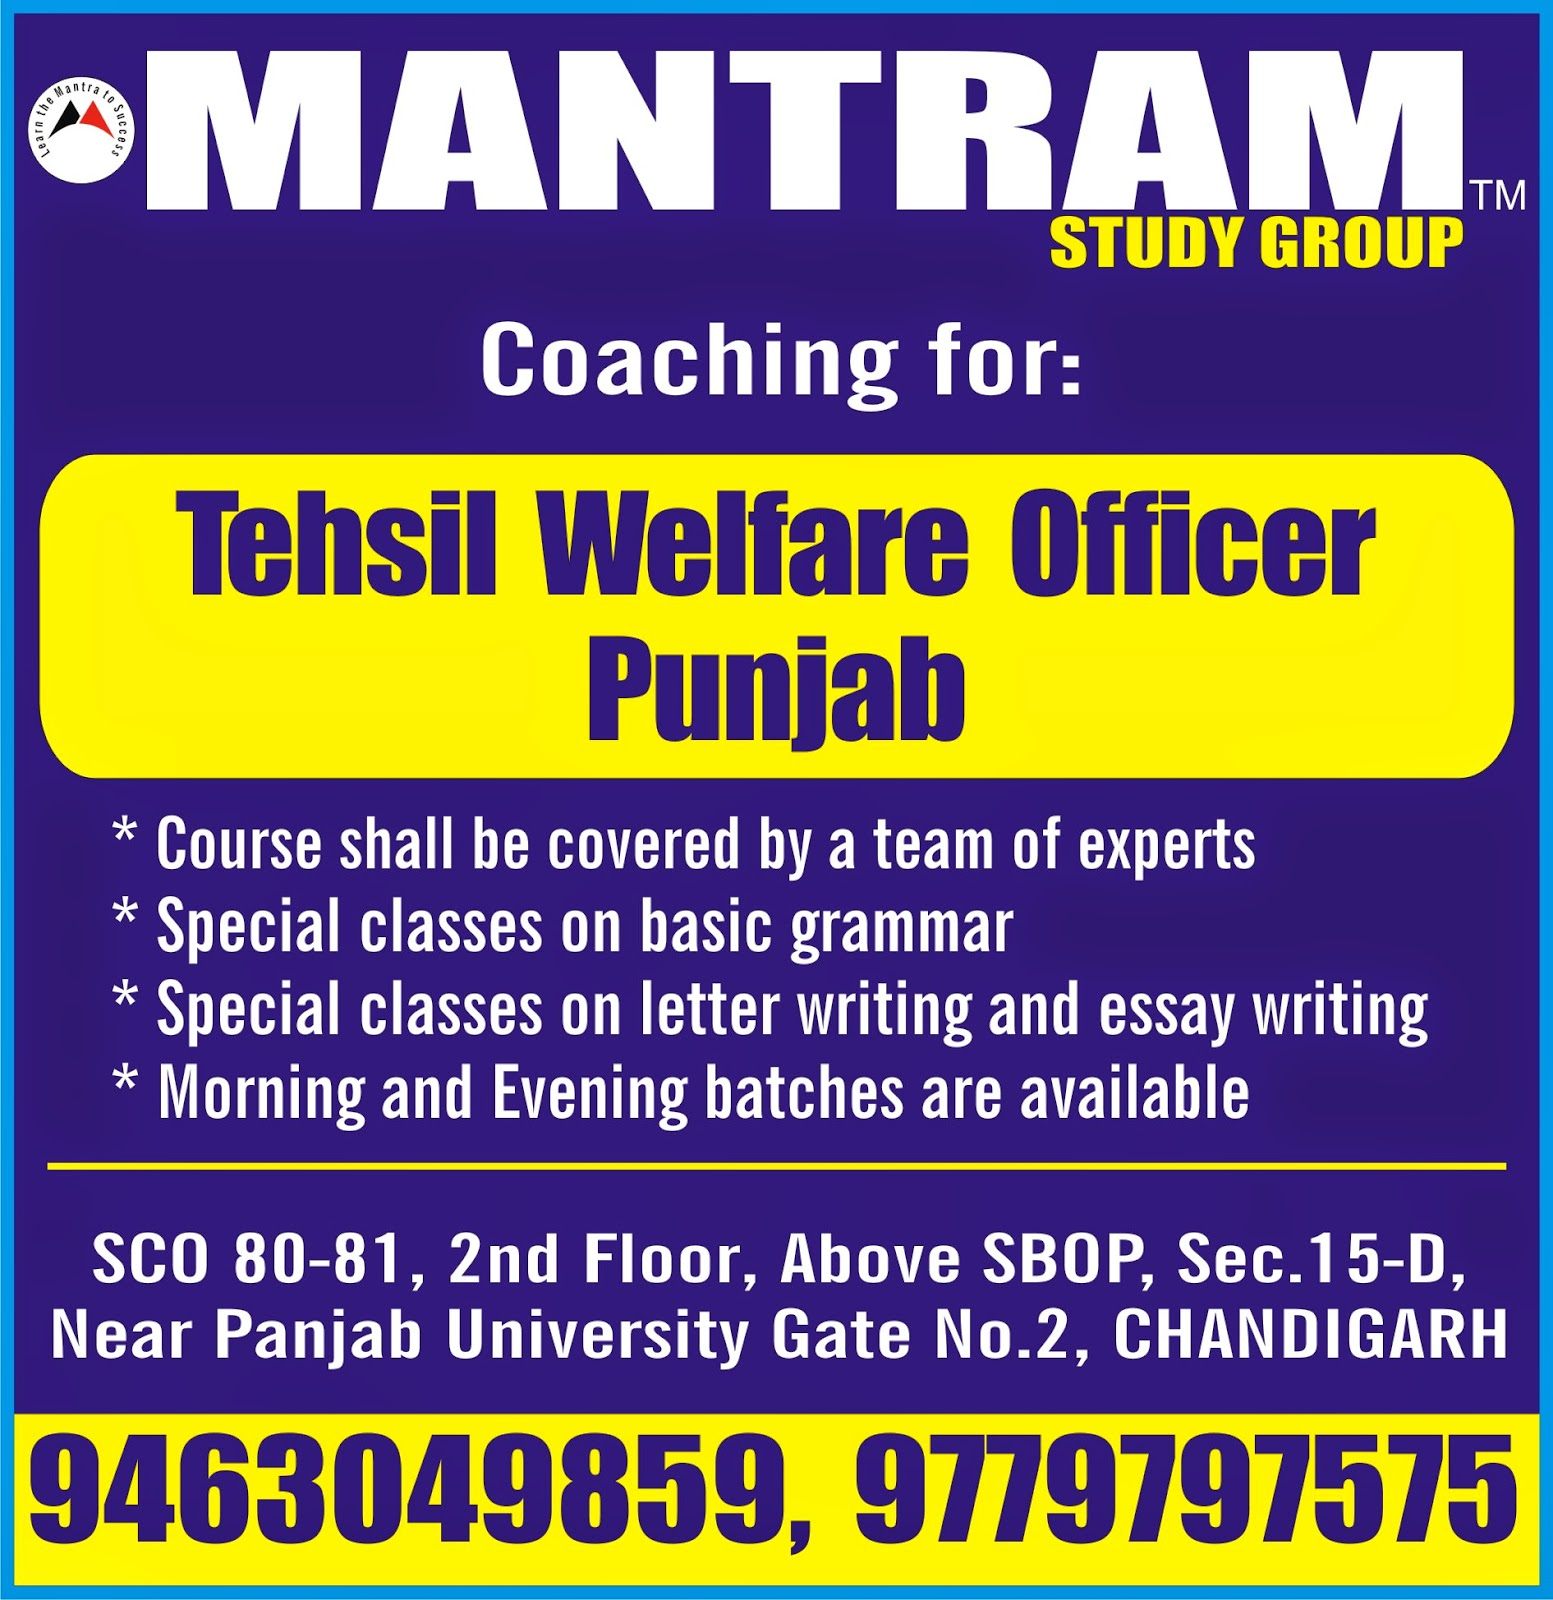 mantram study group punjab jobs 2017 2018 join coaching for tehsil welfare officer punjab by mantram study group in chandigarh